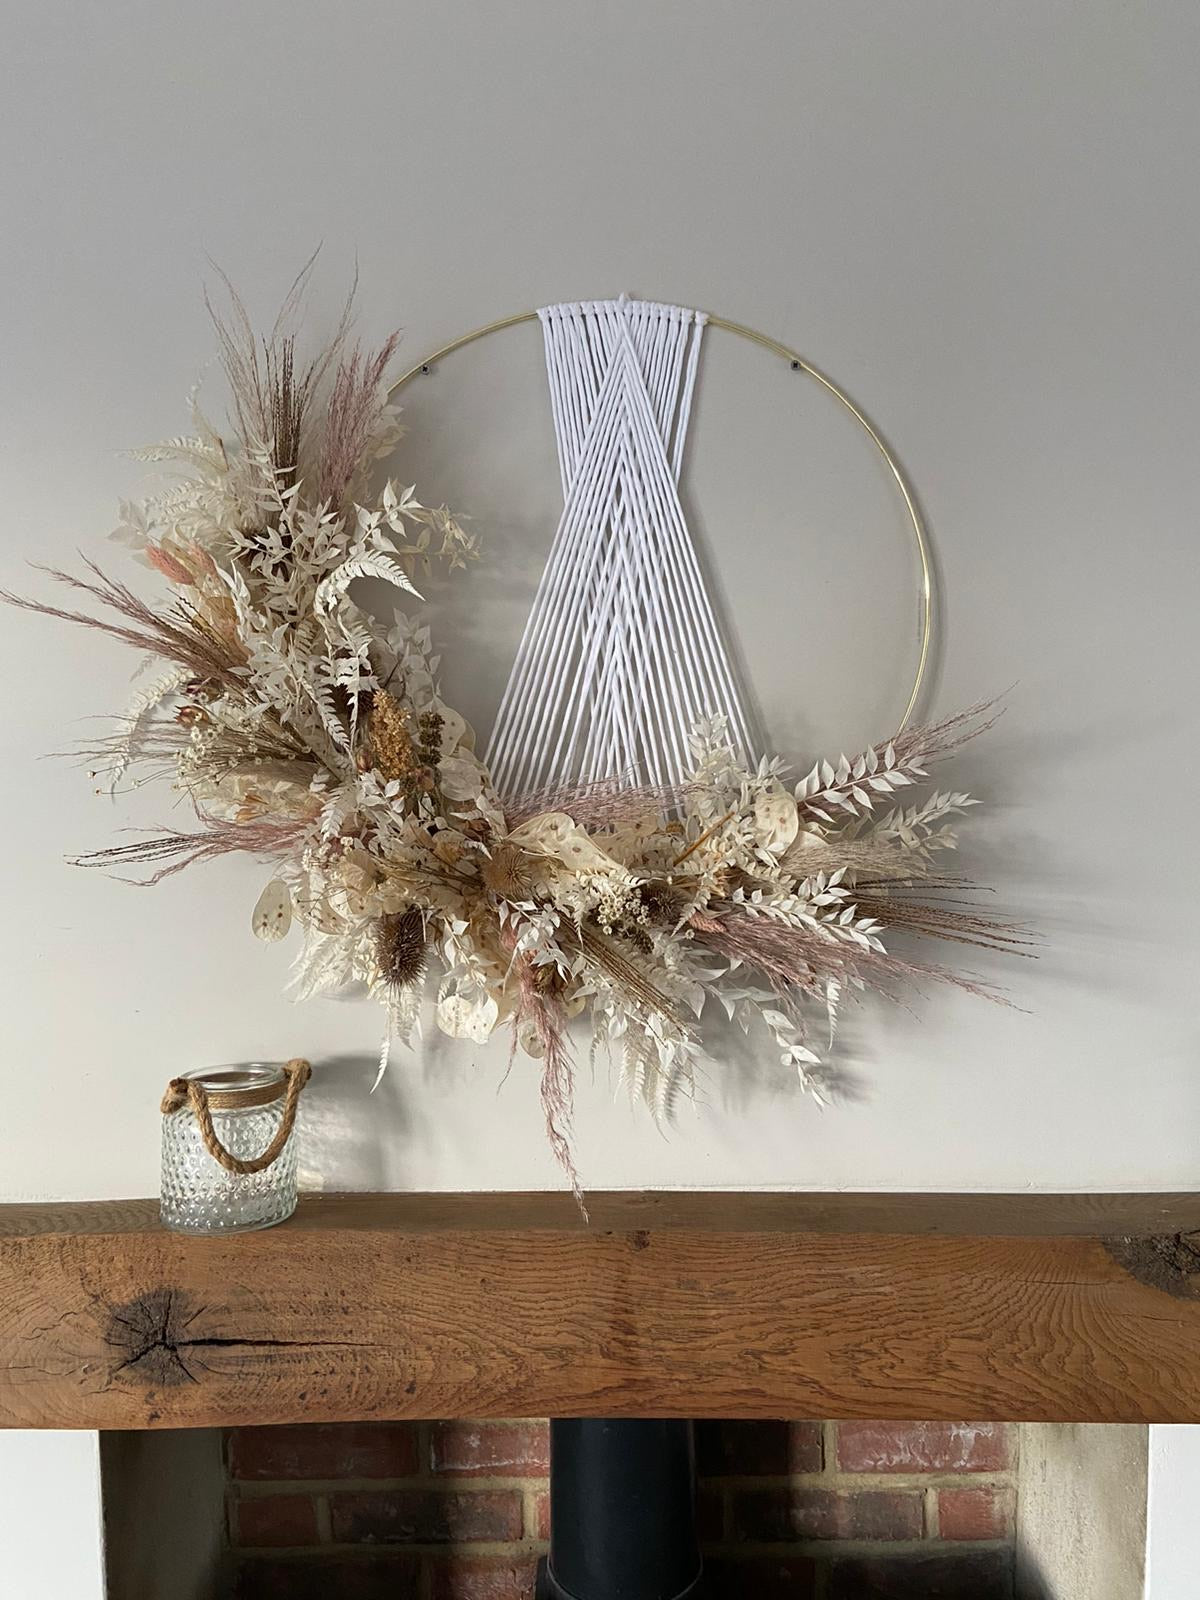 50cm Bespoke Wall Hanger with Dried Florals